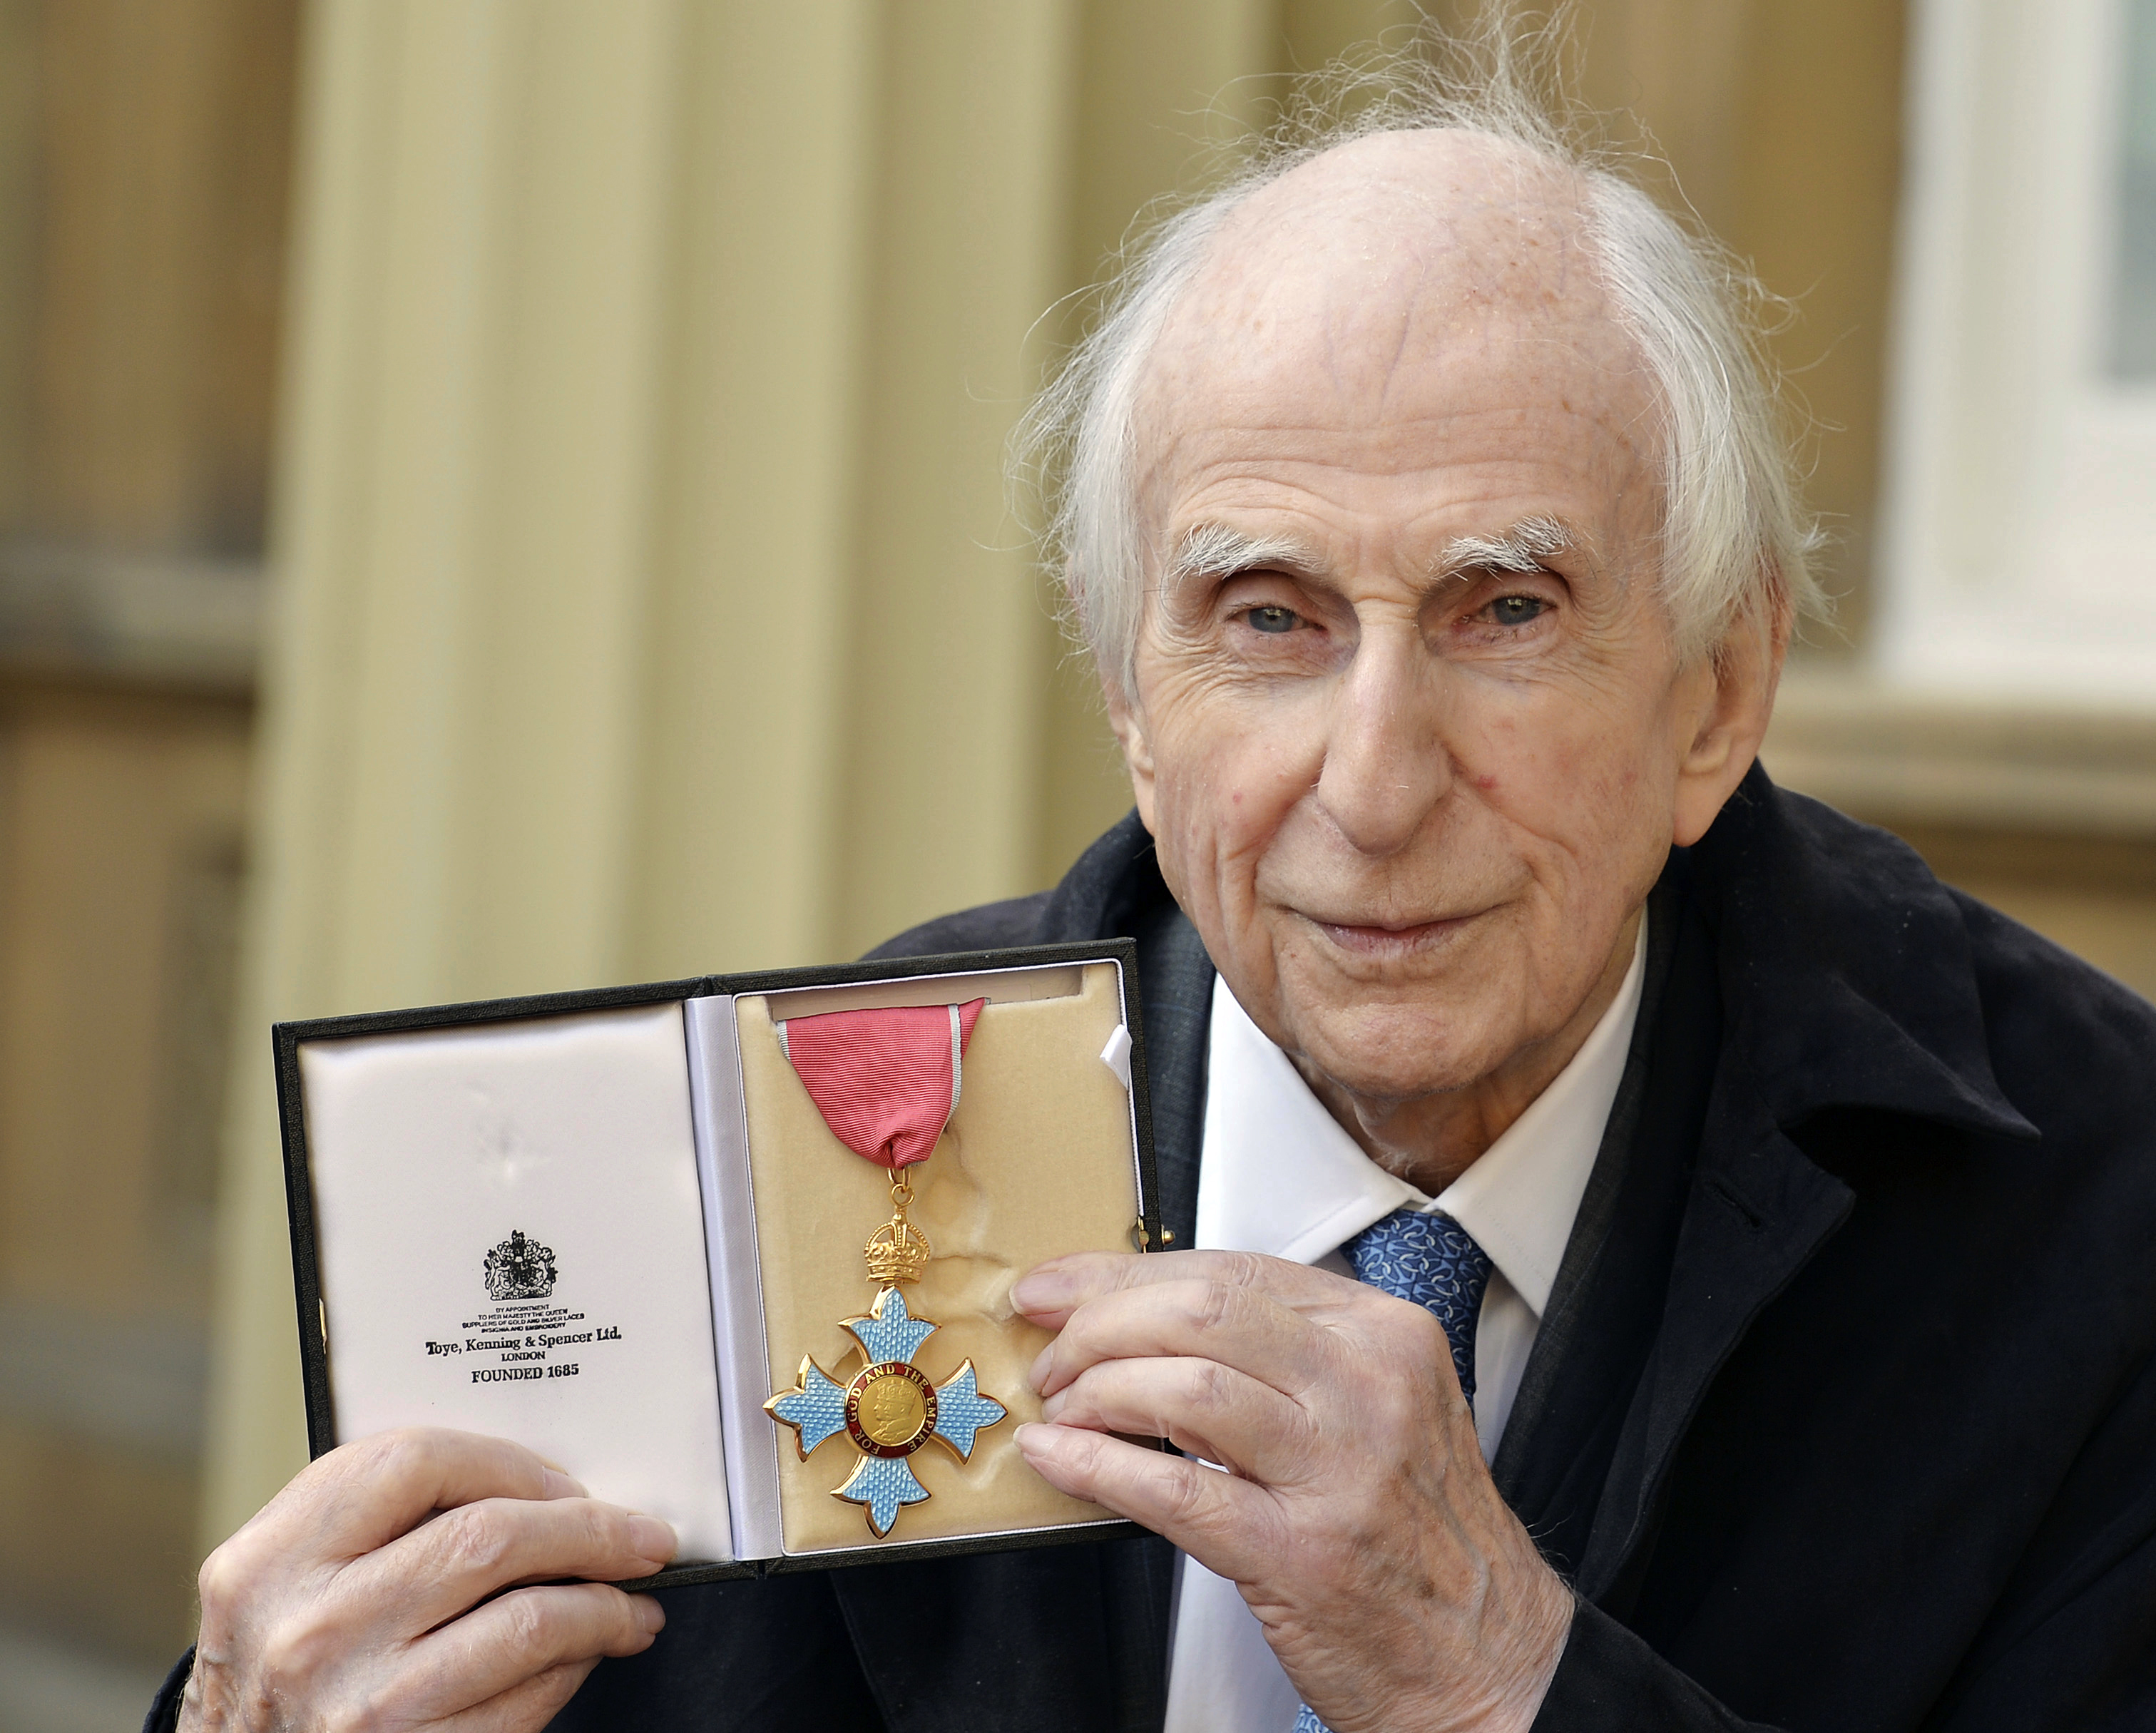 'Paddington Bear' Author Michael Bond Dead at 91